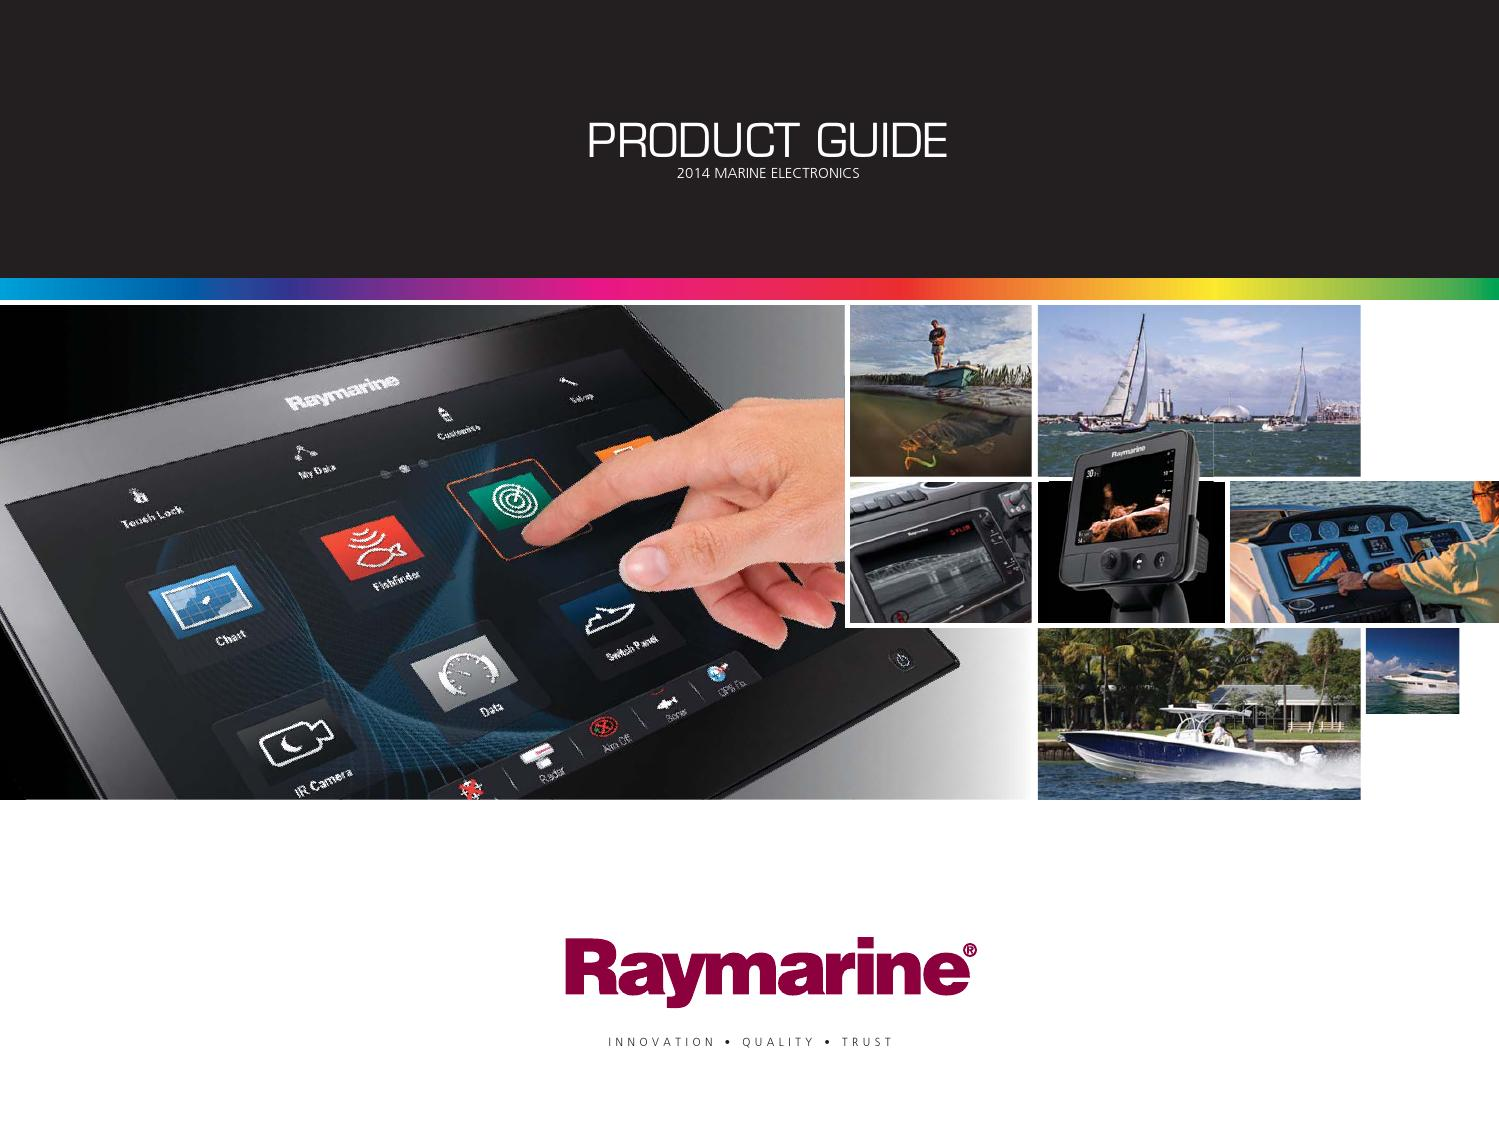 Raymarine Transom Mount Mounting Bracket specifically for CPT-60 Boat Marine